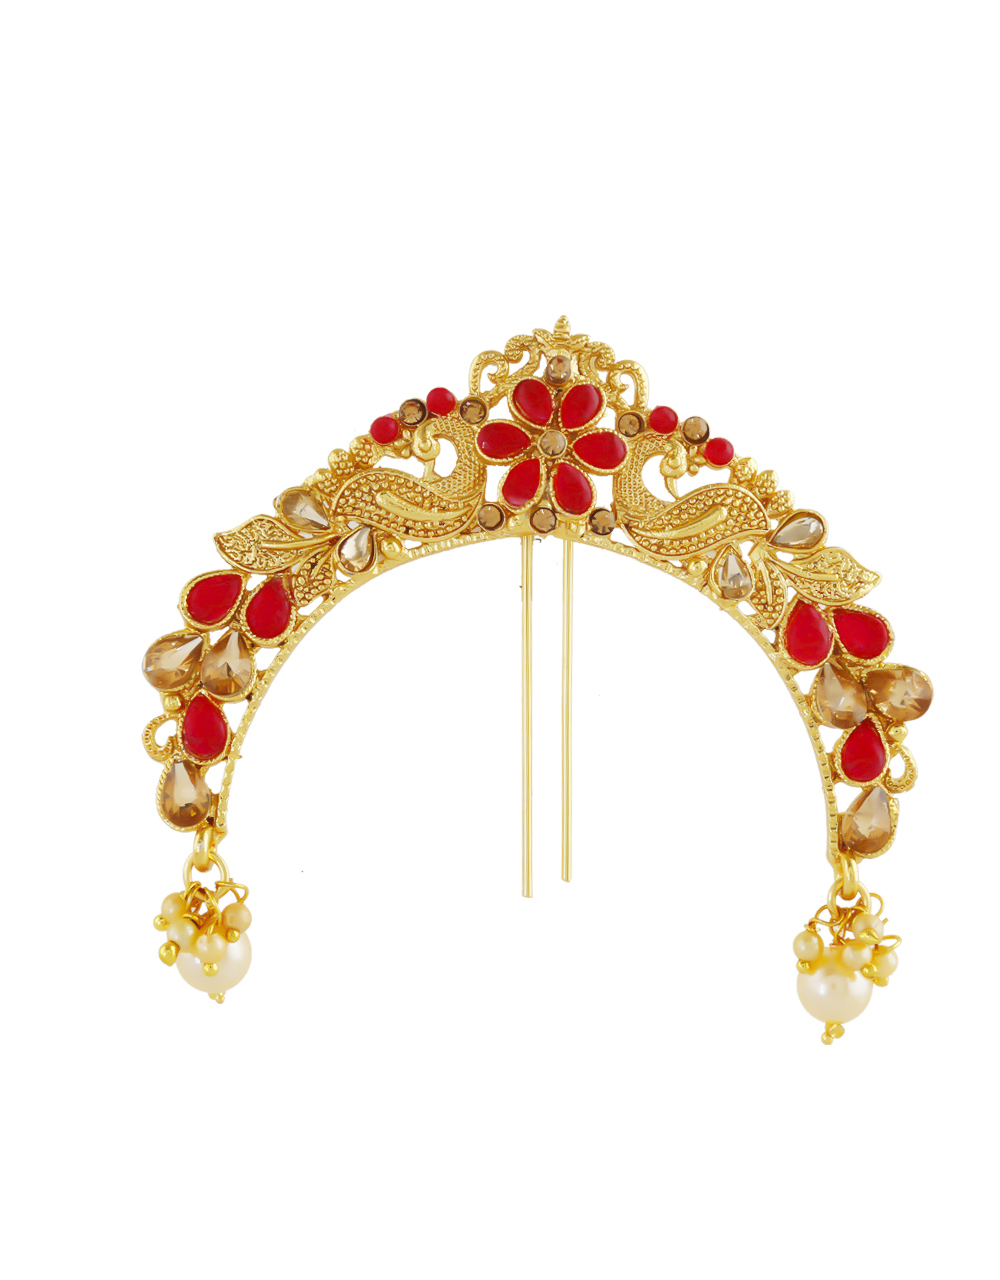 Red Colour Gold Finish Styled With Pearls Beads Brooch